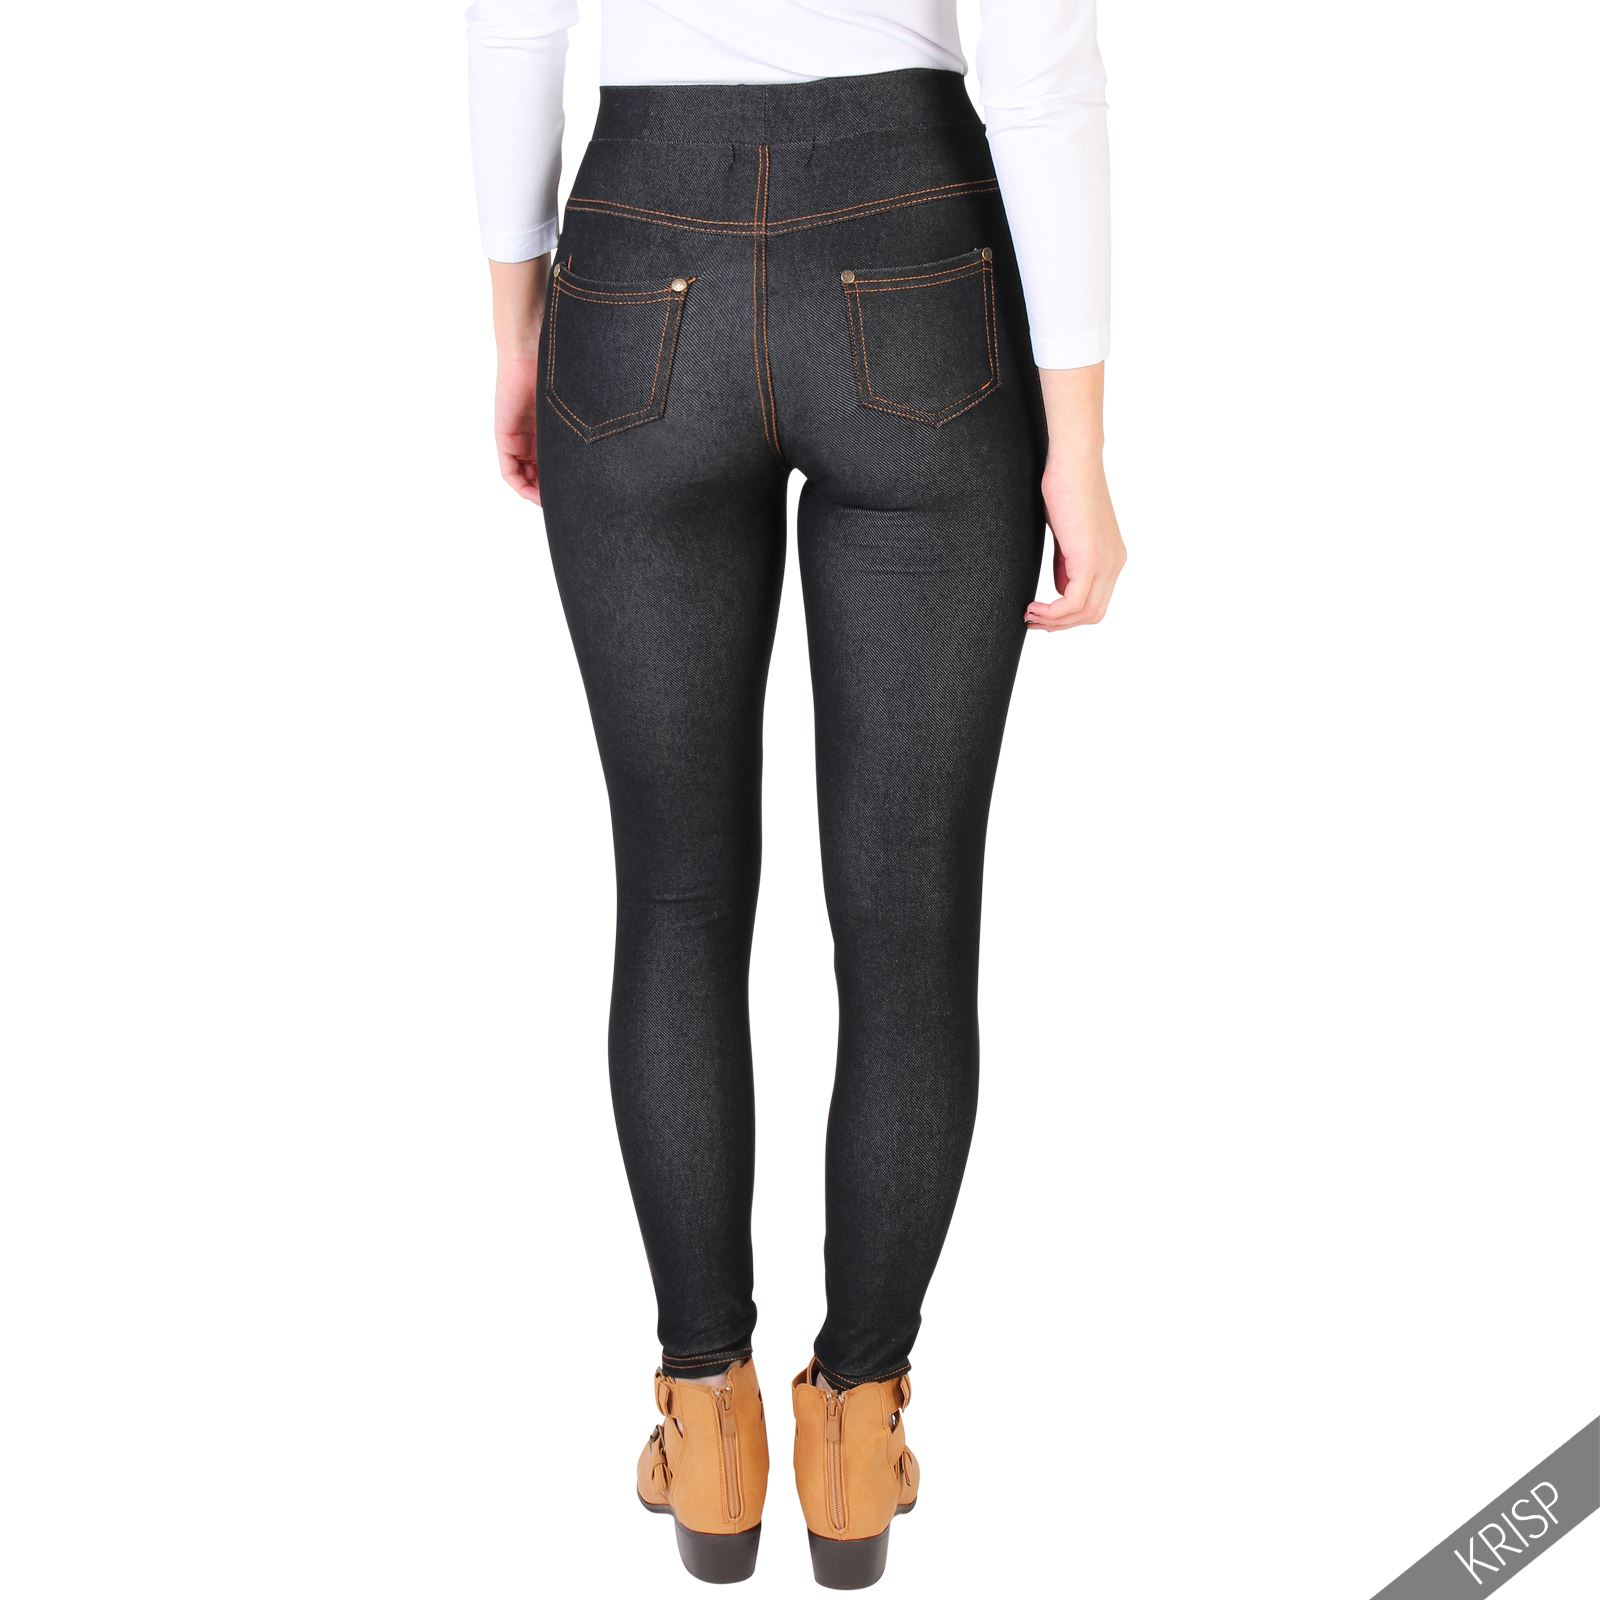 For a more casual look, pair our jeggings with a cute tee and sneakers. Or, dress them up with a blouse and adorable cardigan. maurices jeggings are a fun statement pant perfect for any occasion. Add some bright colors and pair with neutral tops, or rock our jegging jeans that go with any top or shoe style.